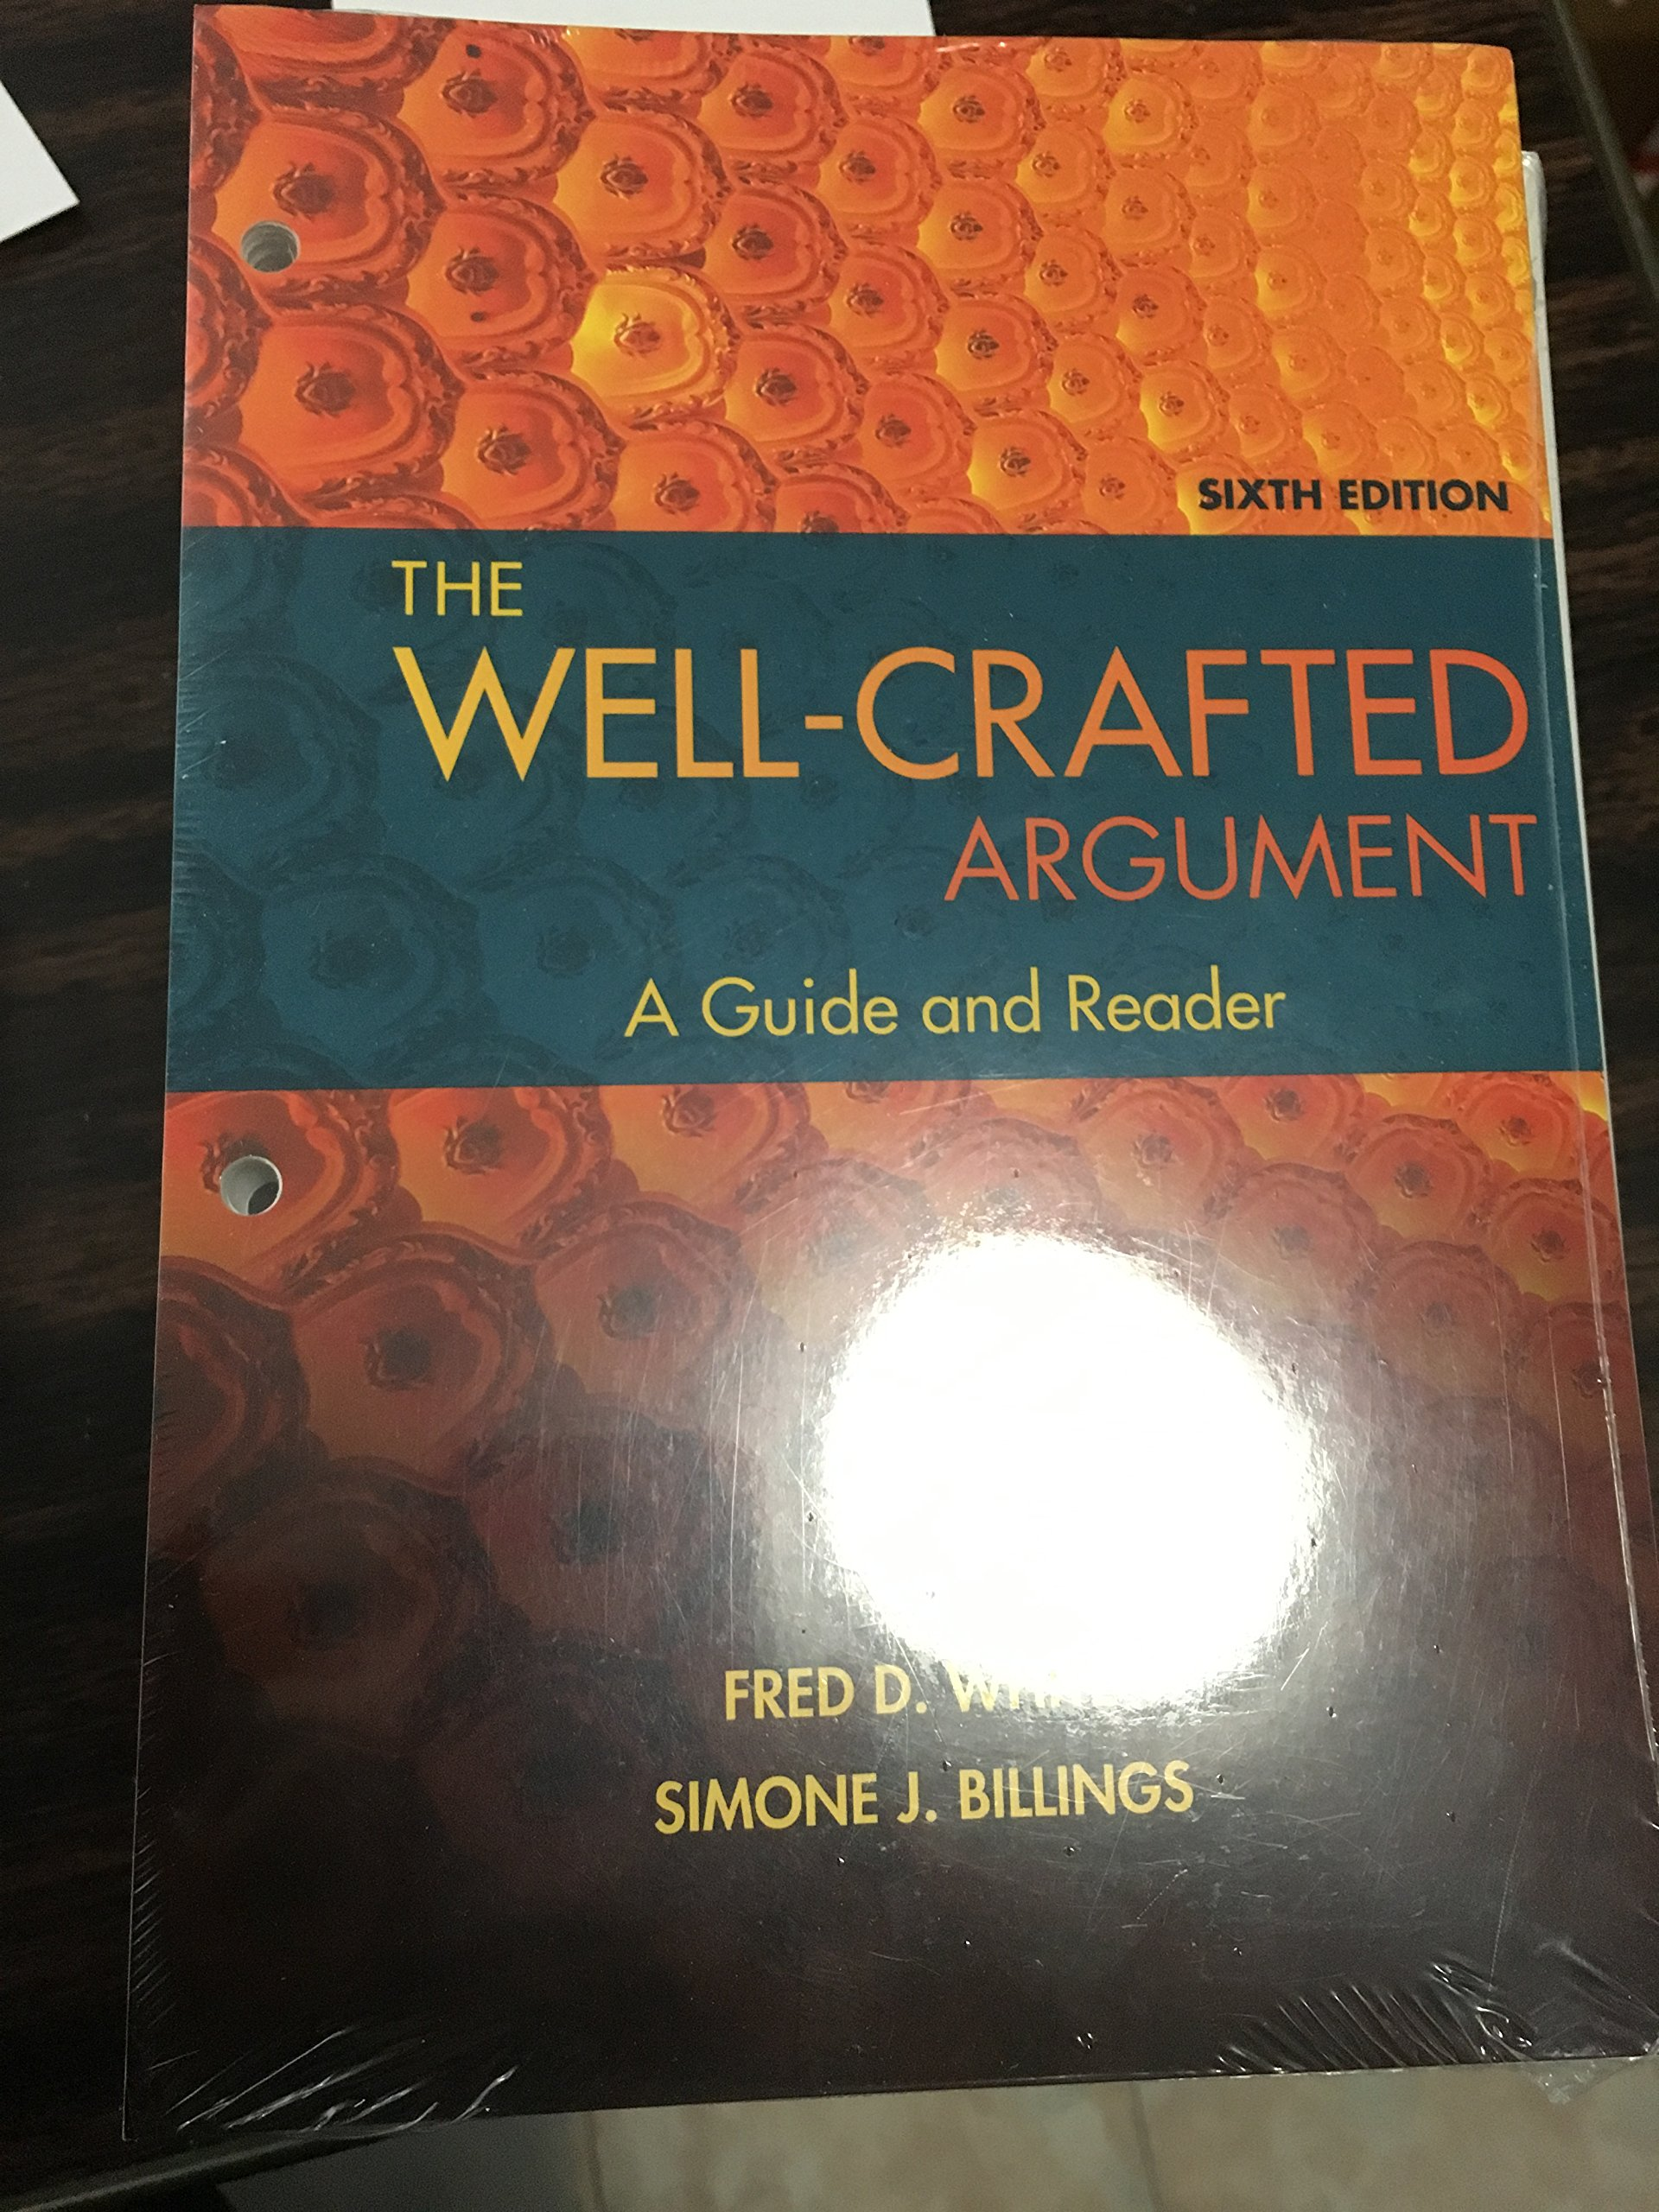 Buy The Well-crafted Argument Book Online at Low Prices in India | The Well-crafted  Argument Reviews & Ratings - Amazon.in